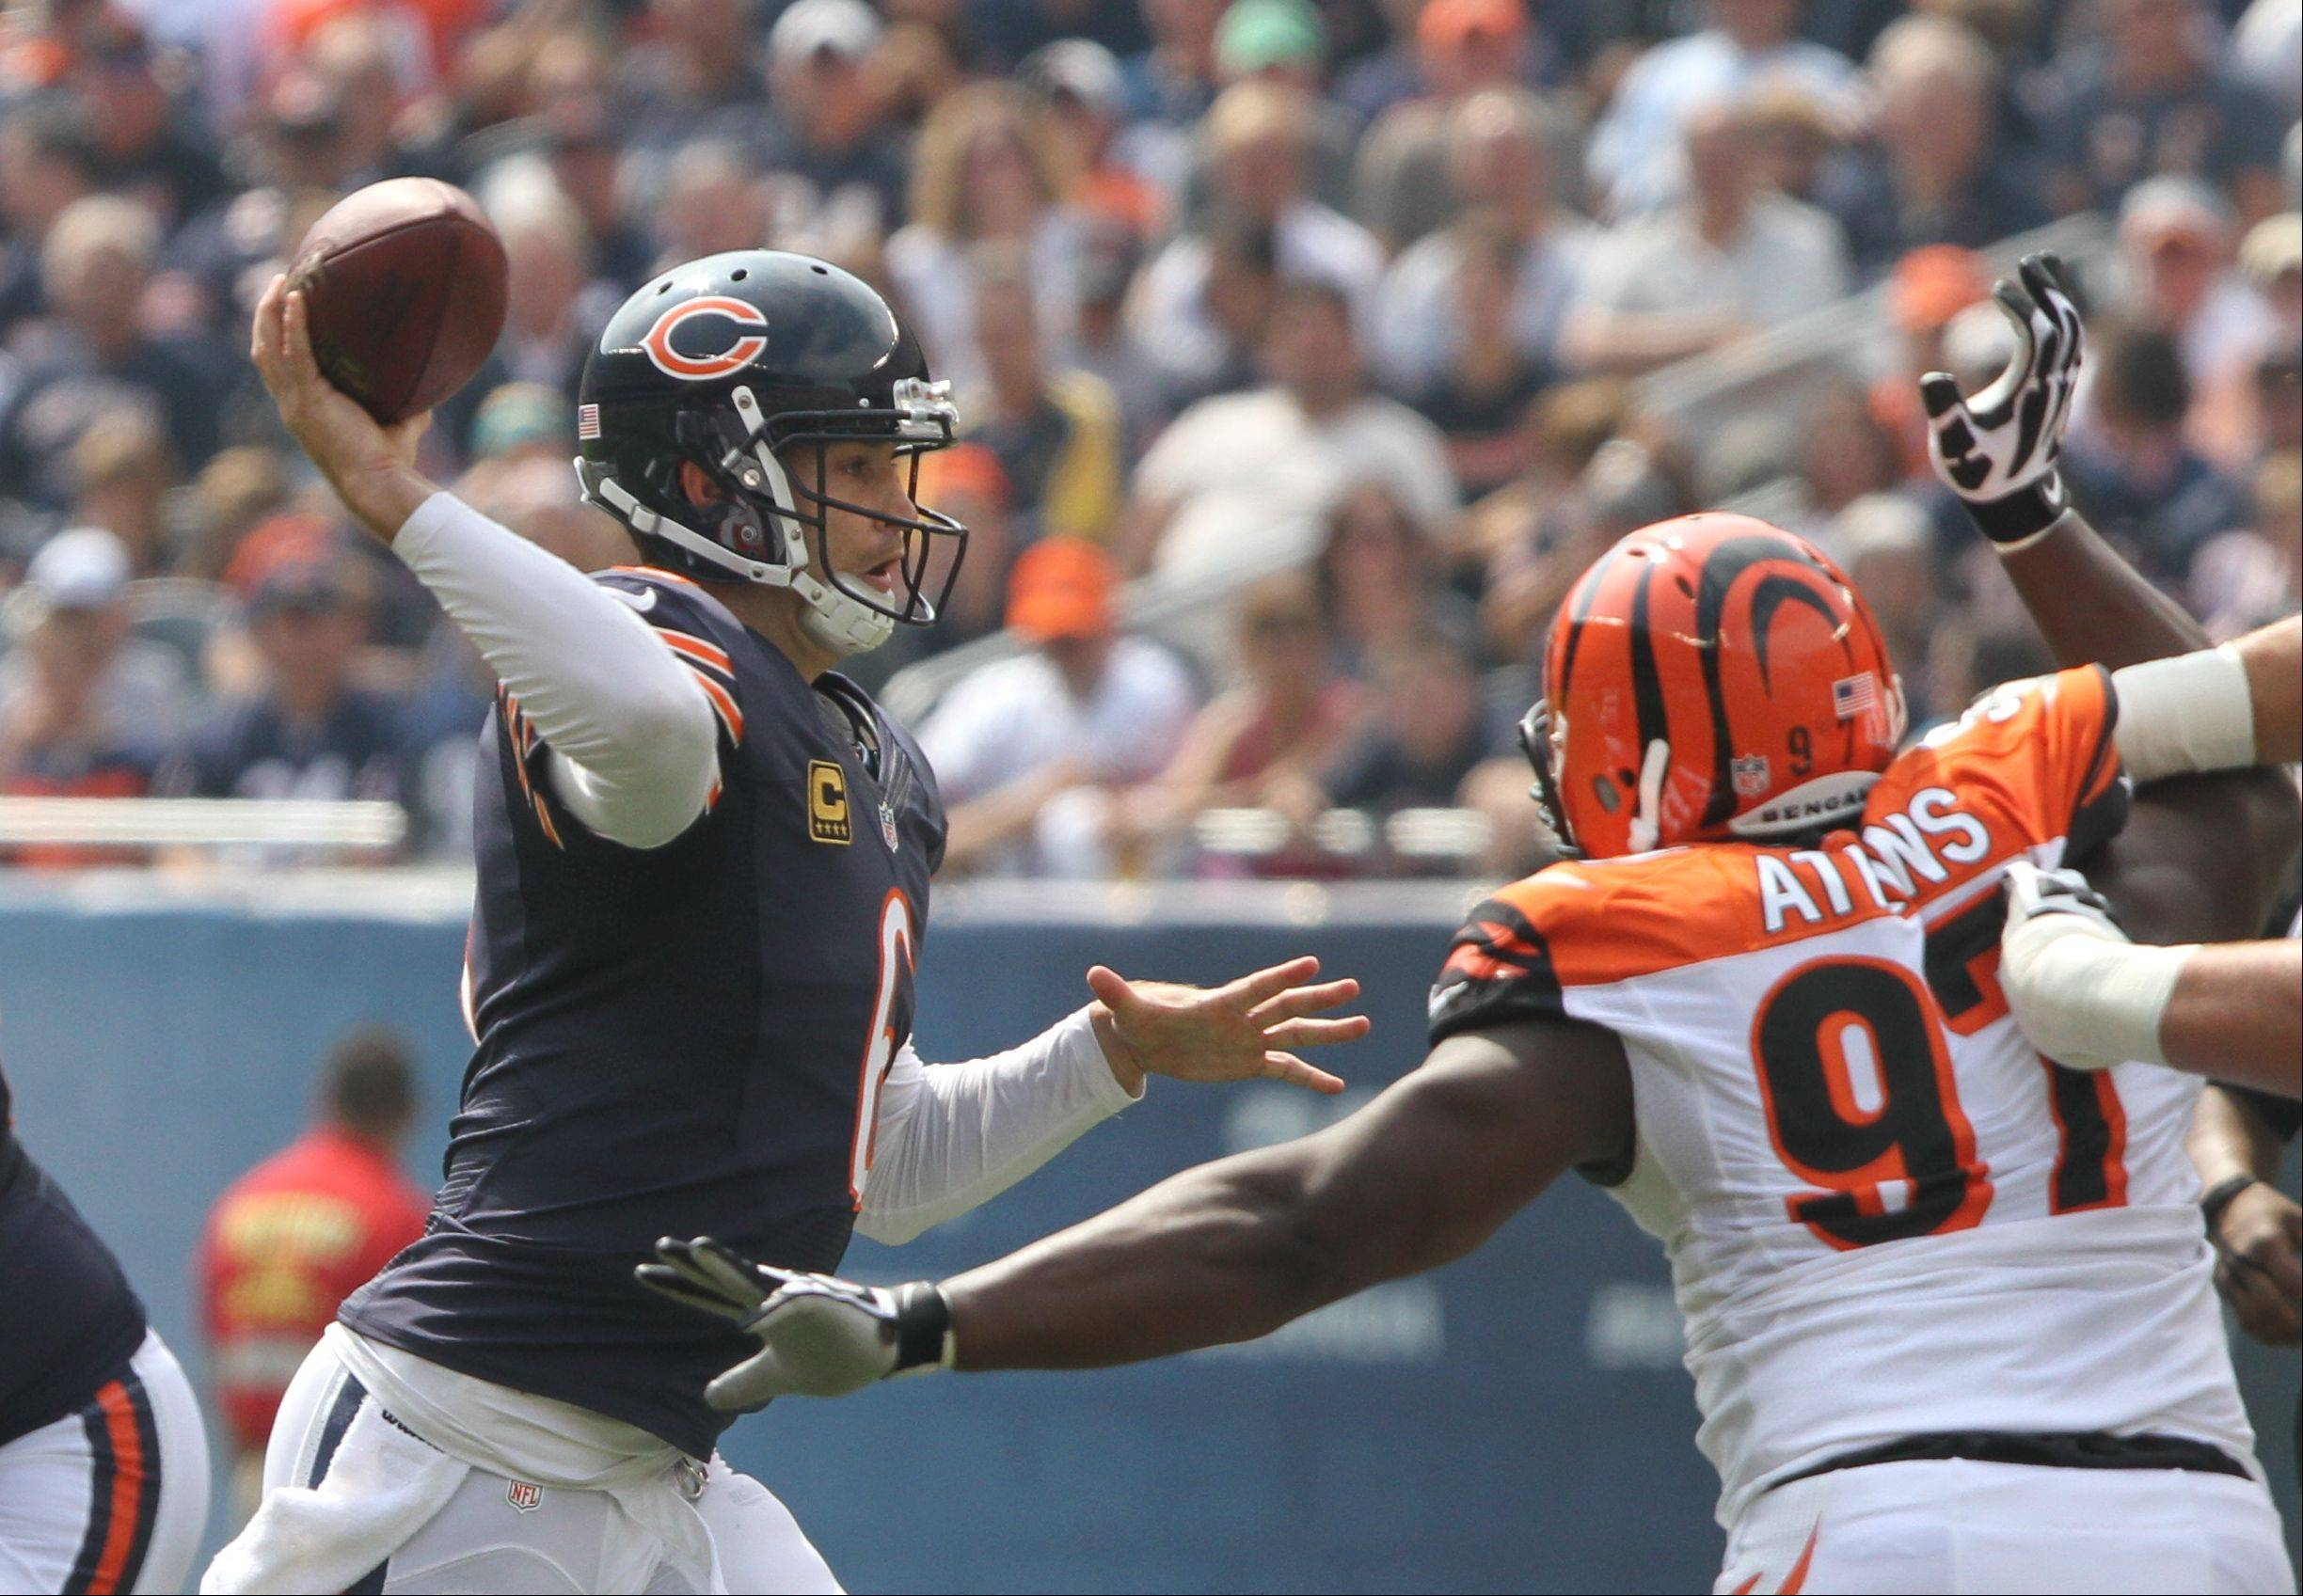 Chicago Bears quarterback Jay Cutler throws during their opening day game against the Cincinnati Bengals Sunday at Soldier Field in Chicago.